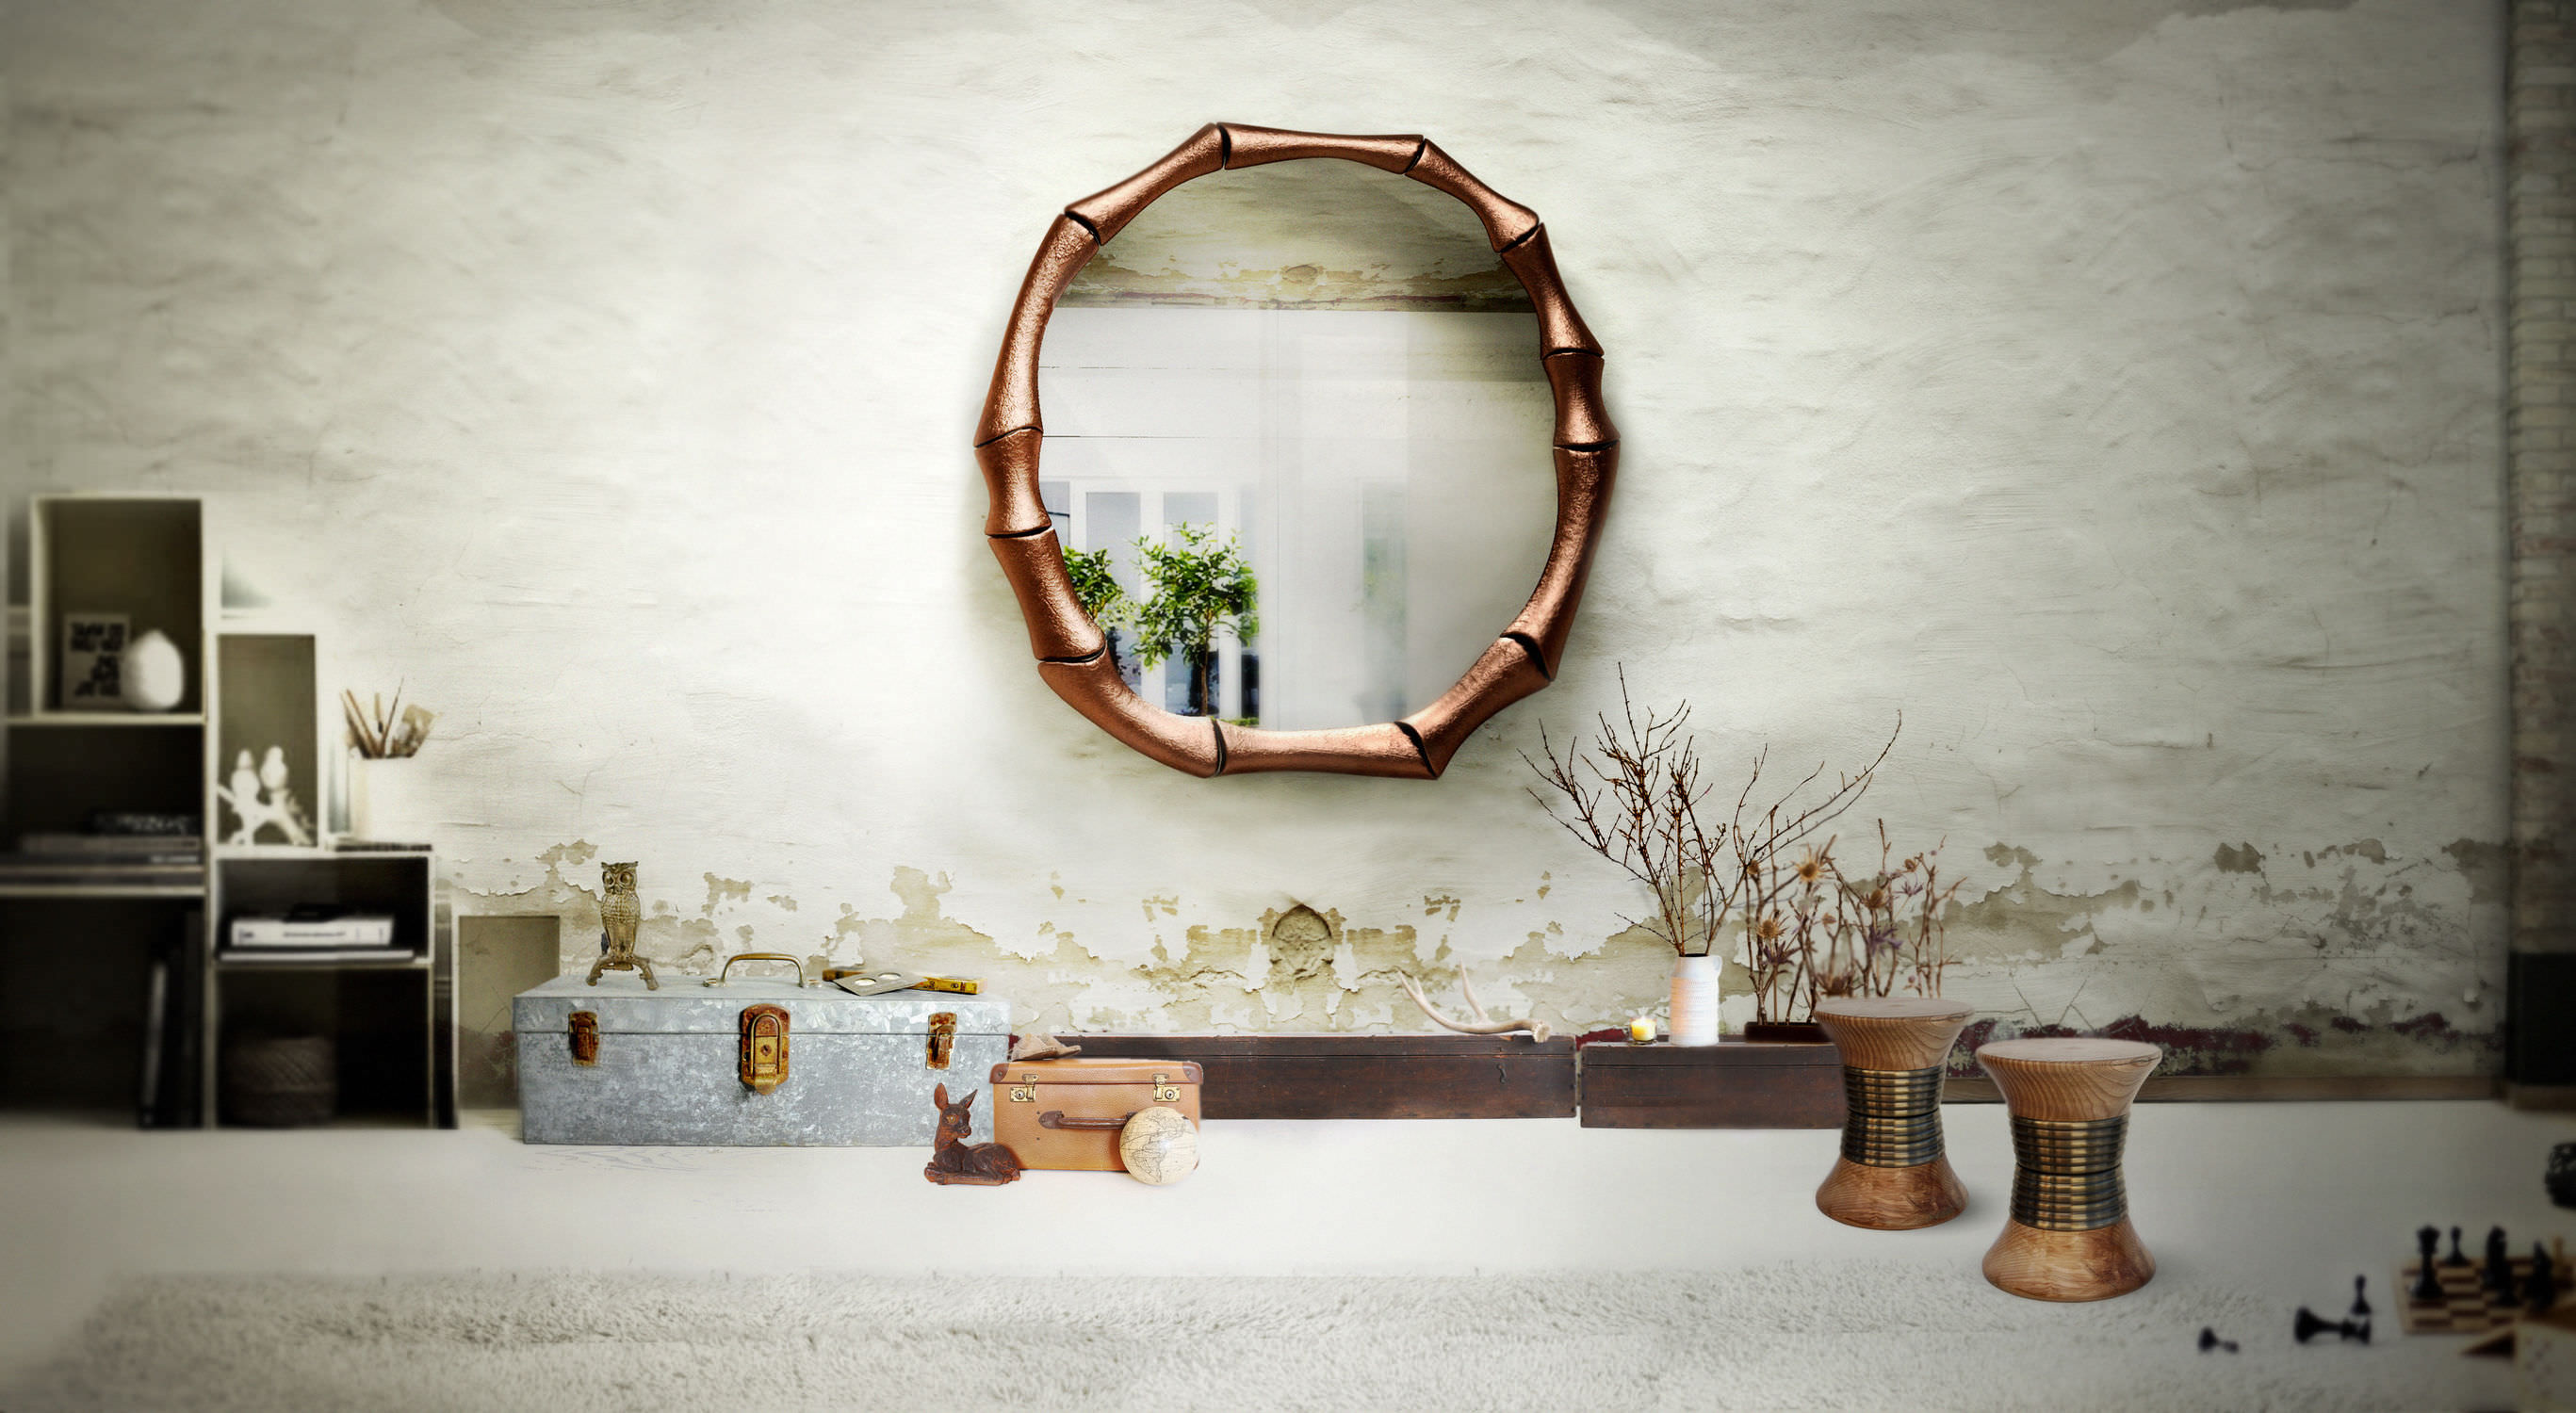 The Most Beautiful Wall Mirror Designs for Your Living Room